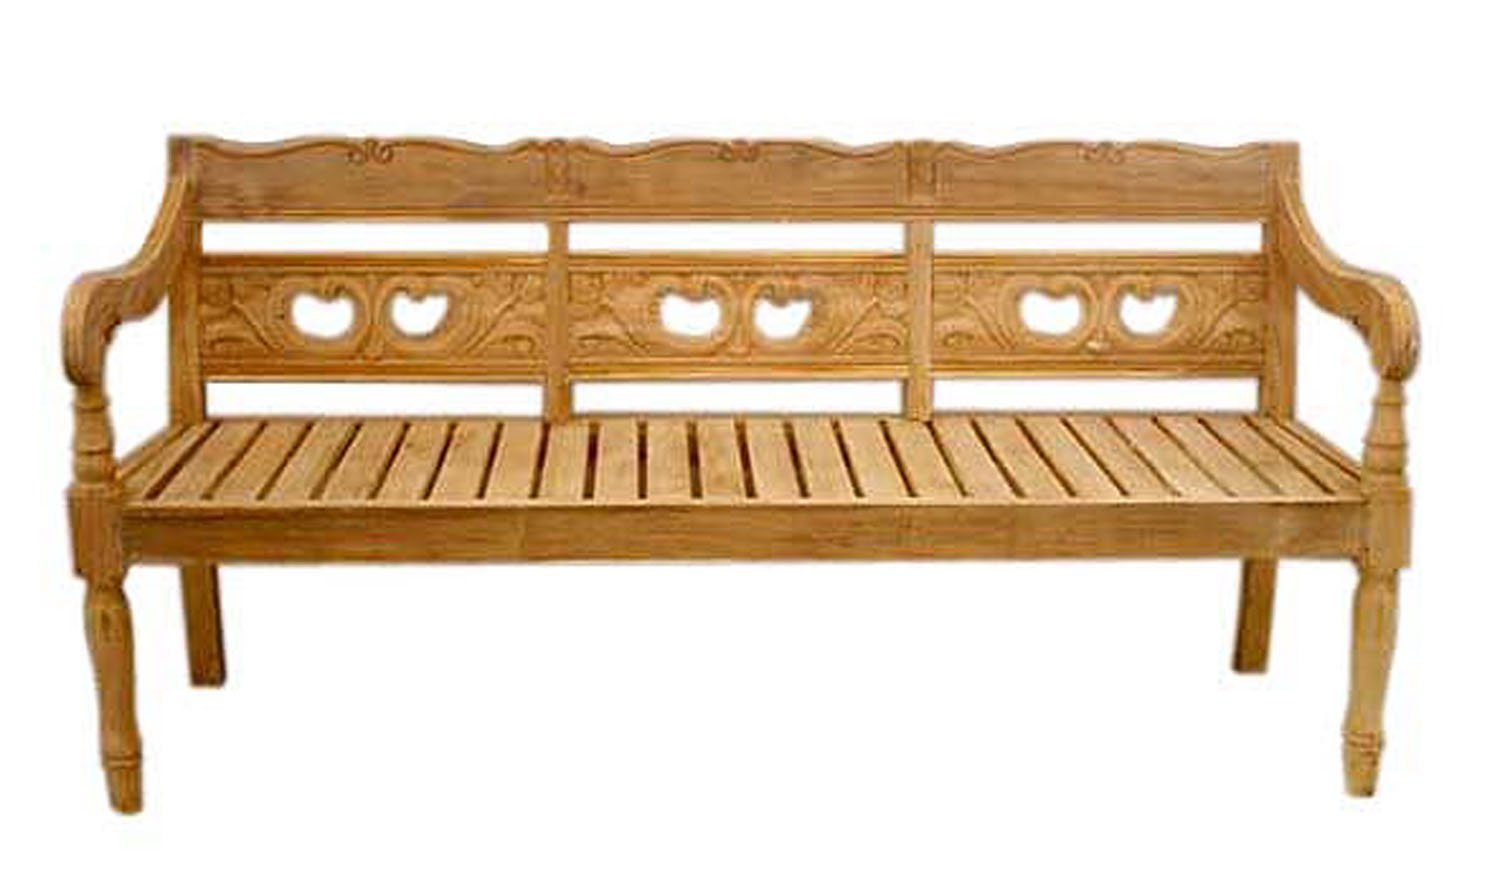 Solid Teak Wood Outdoor Patio Denpasar 3 Seater Bench